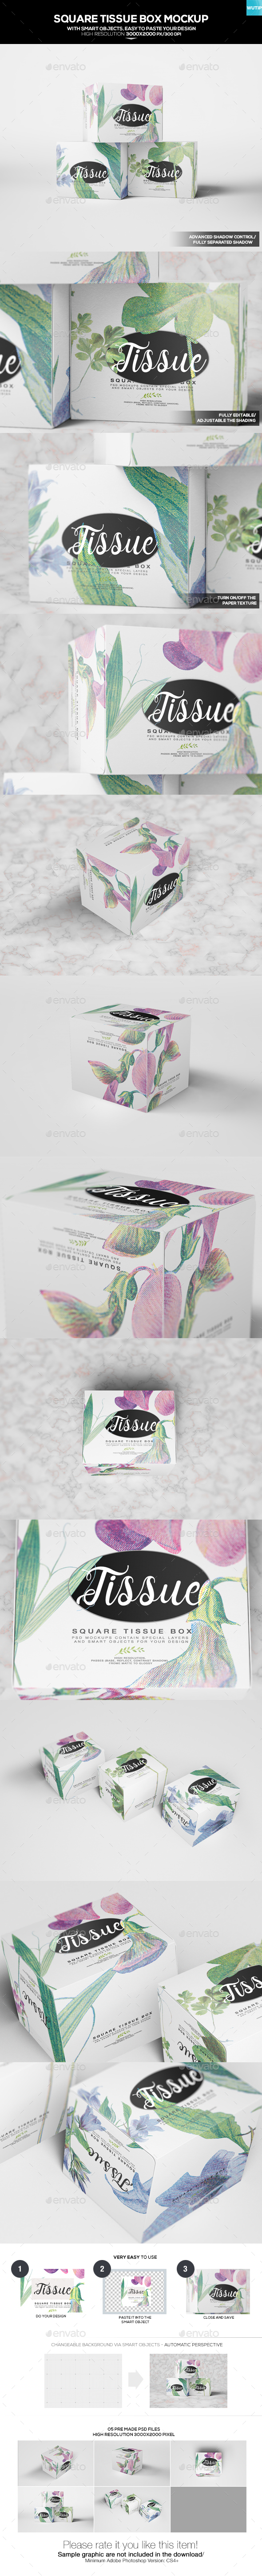 Square Tissue Box Mockup - Miscellaneous Packaging